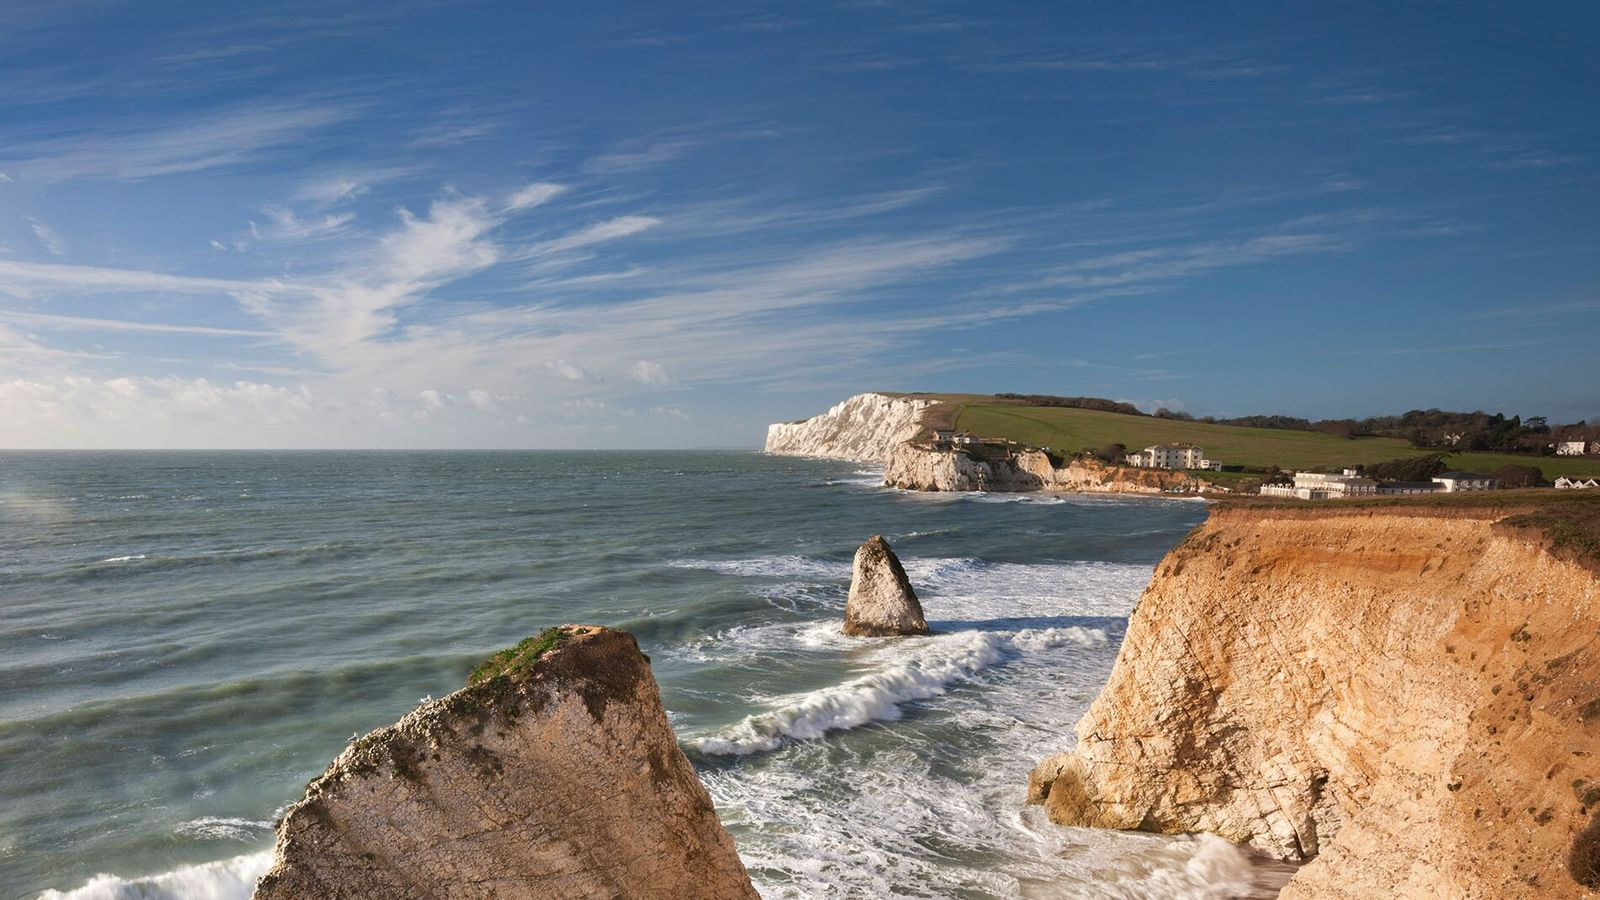 The clifftops overFreshwater Bay on theIsle of Wightprovideimpressive views of the landscape.